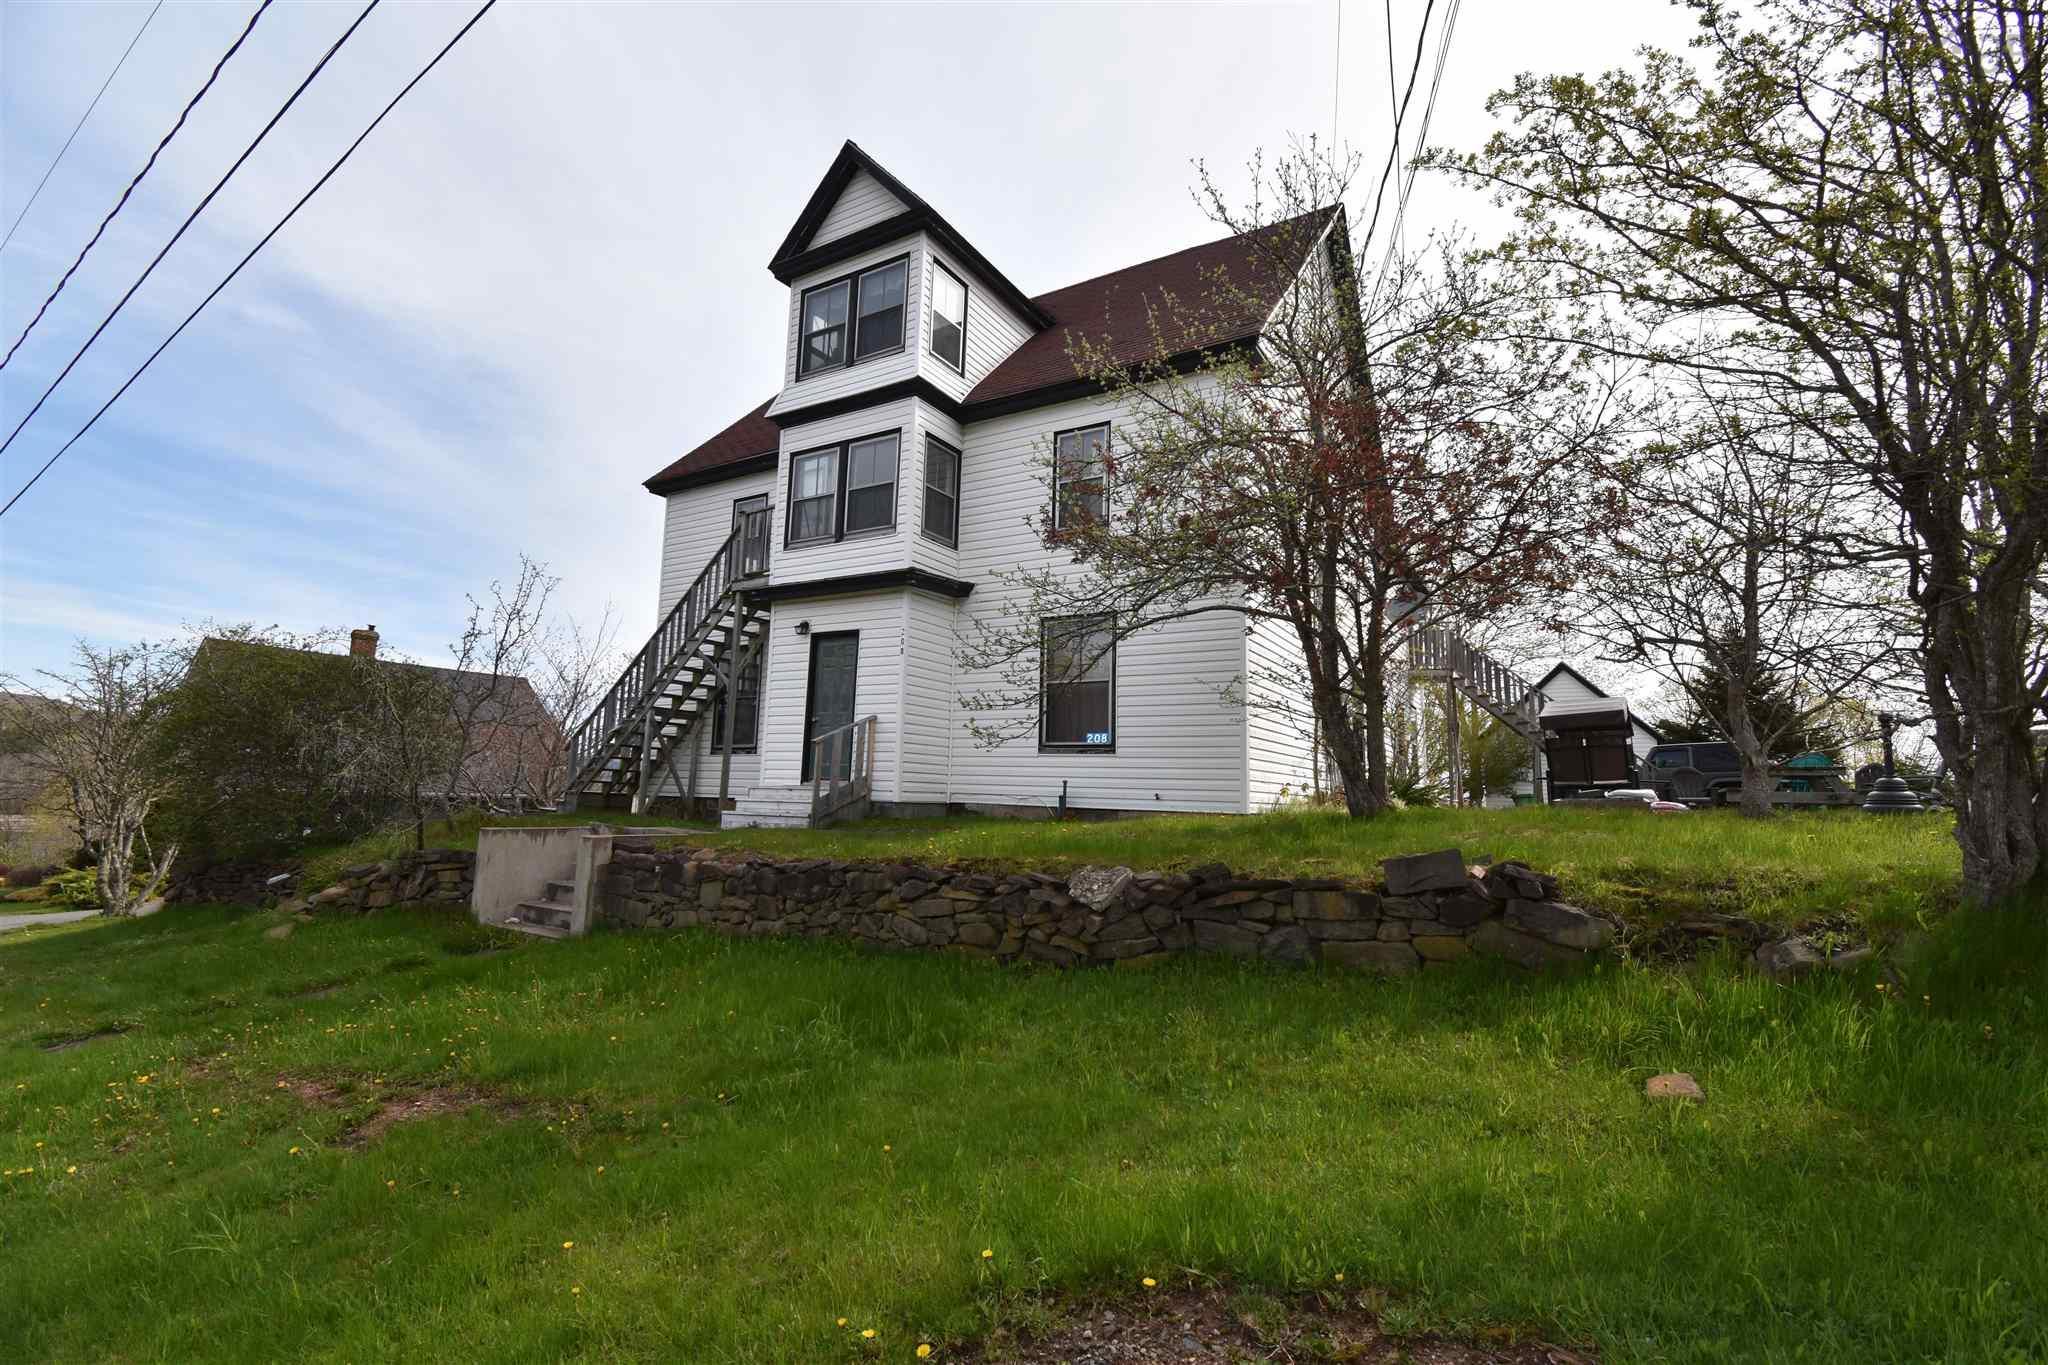 208 KING STREET, Digby, NS B0V 1A0, ,Multi-unit,For Sale,208 KING STREET,202111479